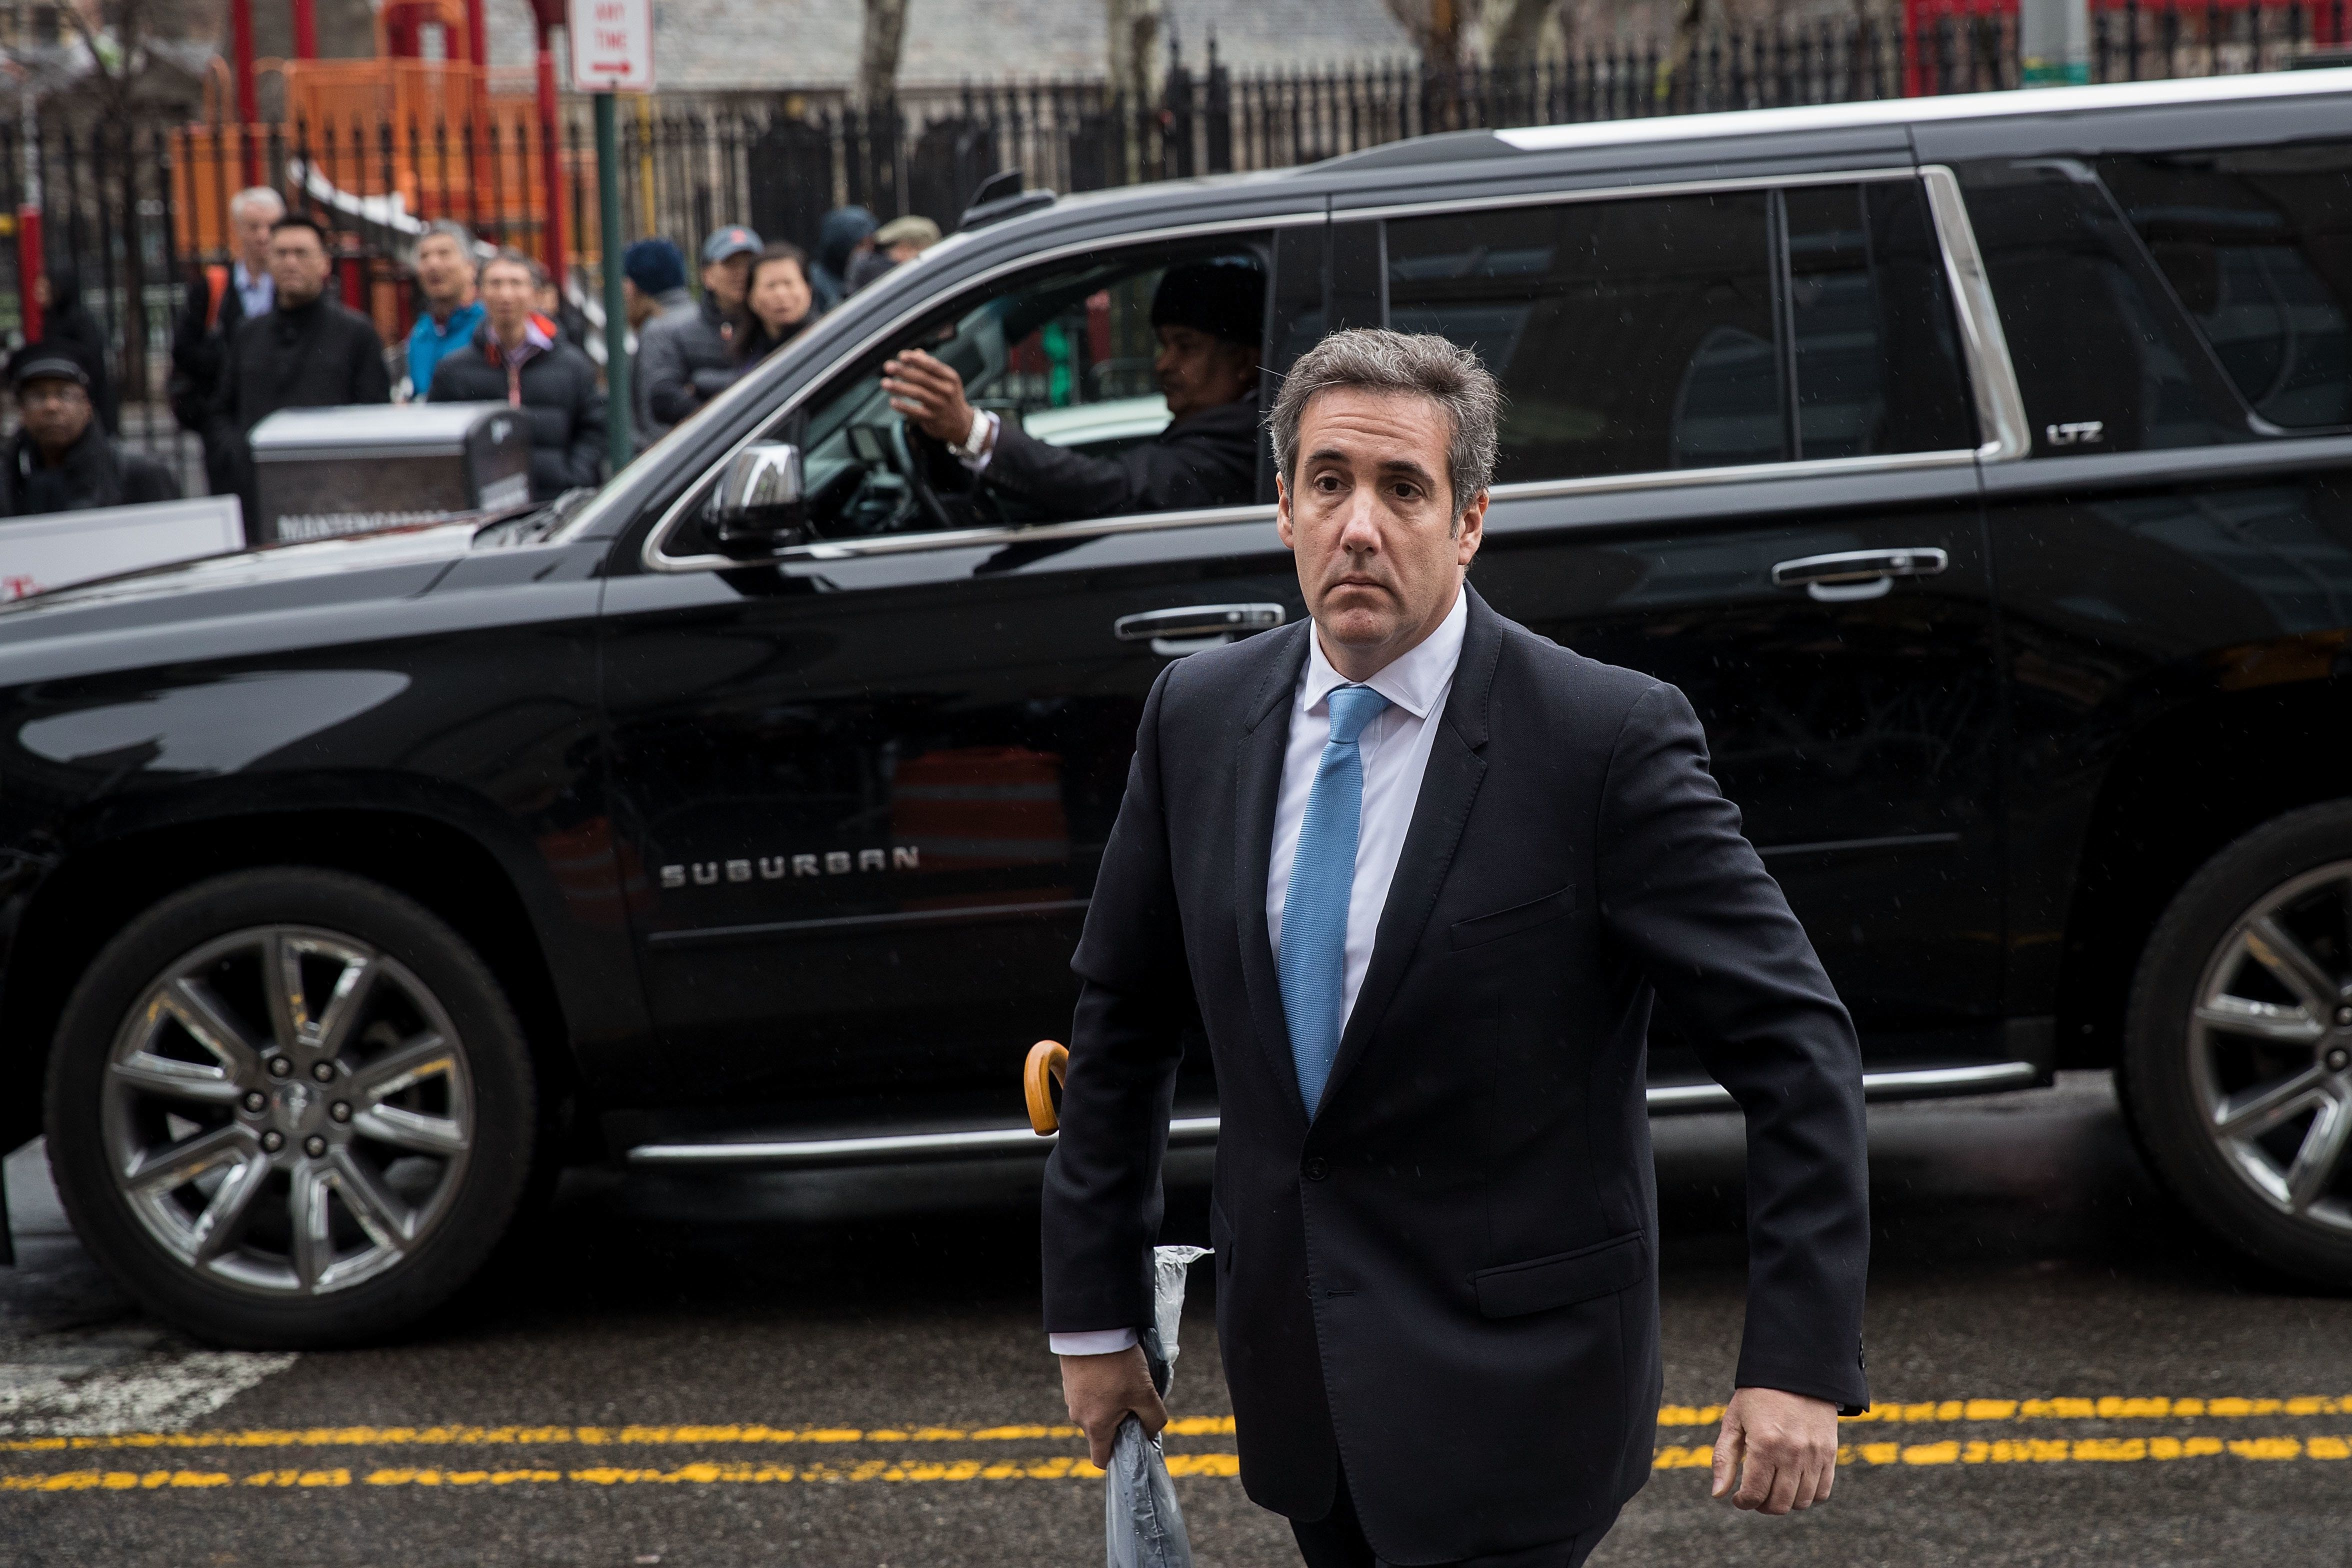 Michael Cohen,a longtime personal lawyer and confidante for President Donald Trump arrives at the United States Distri